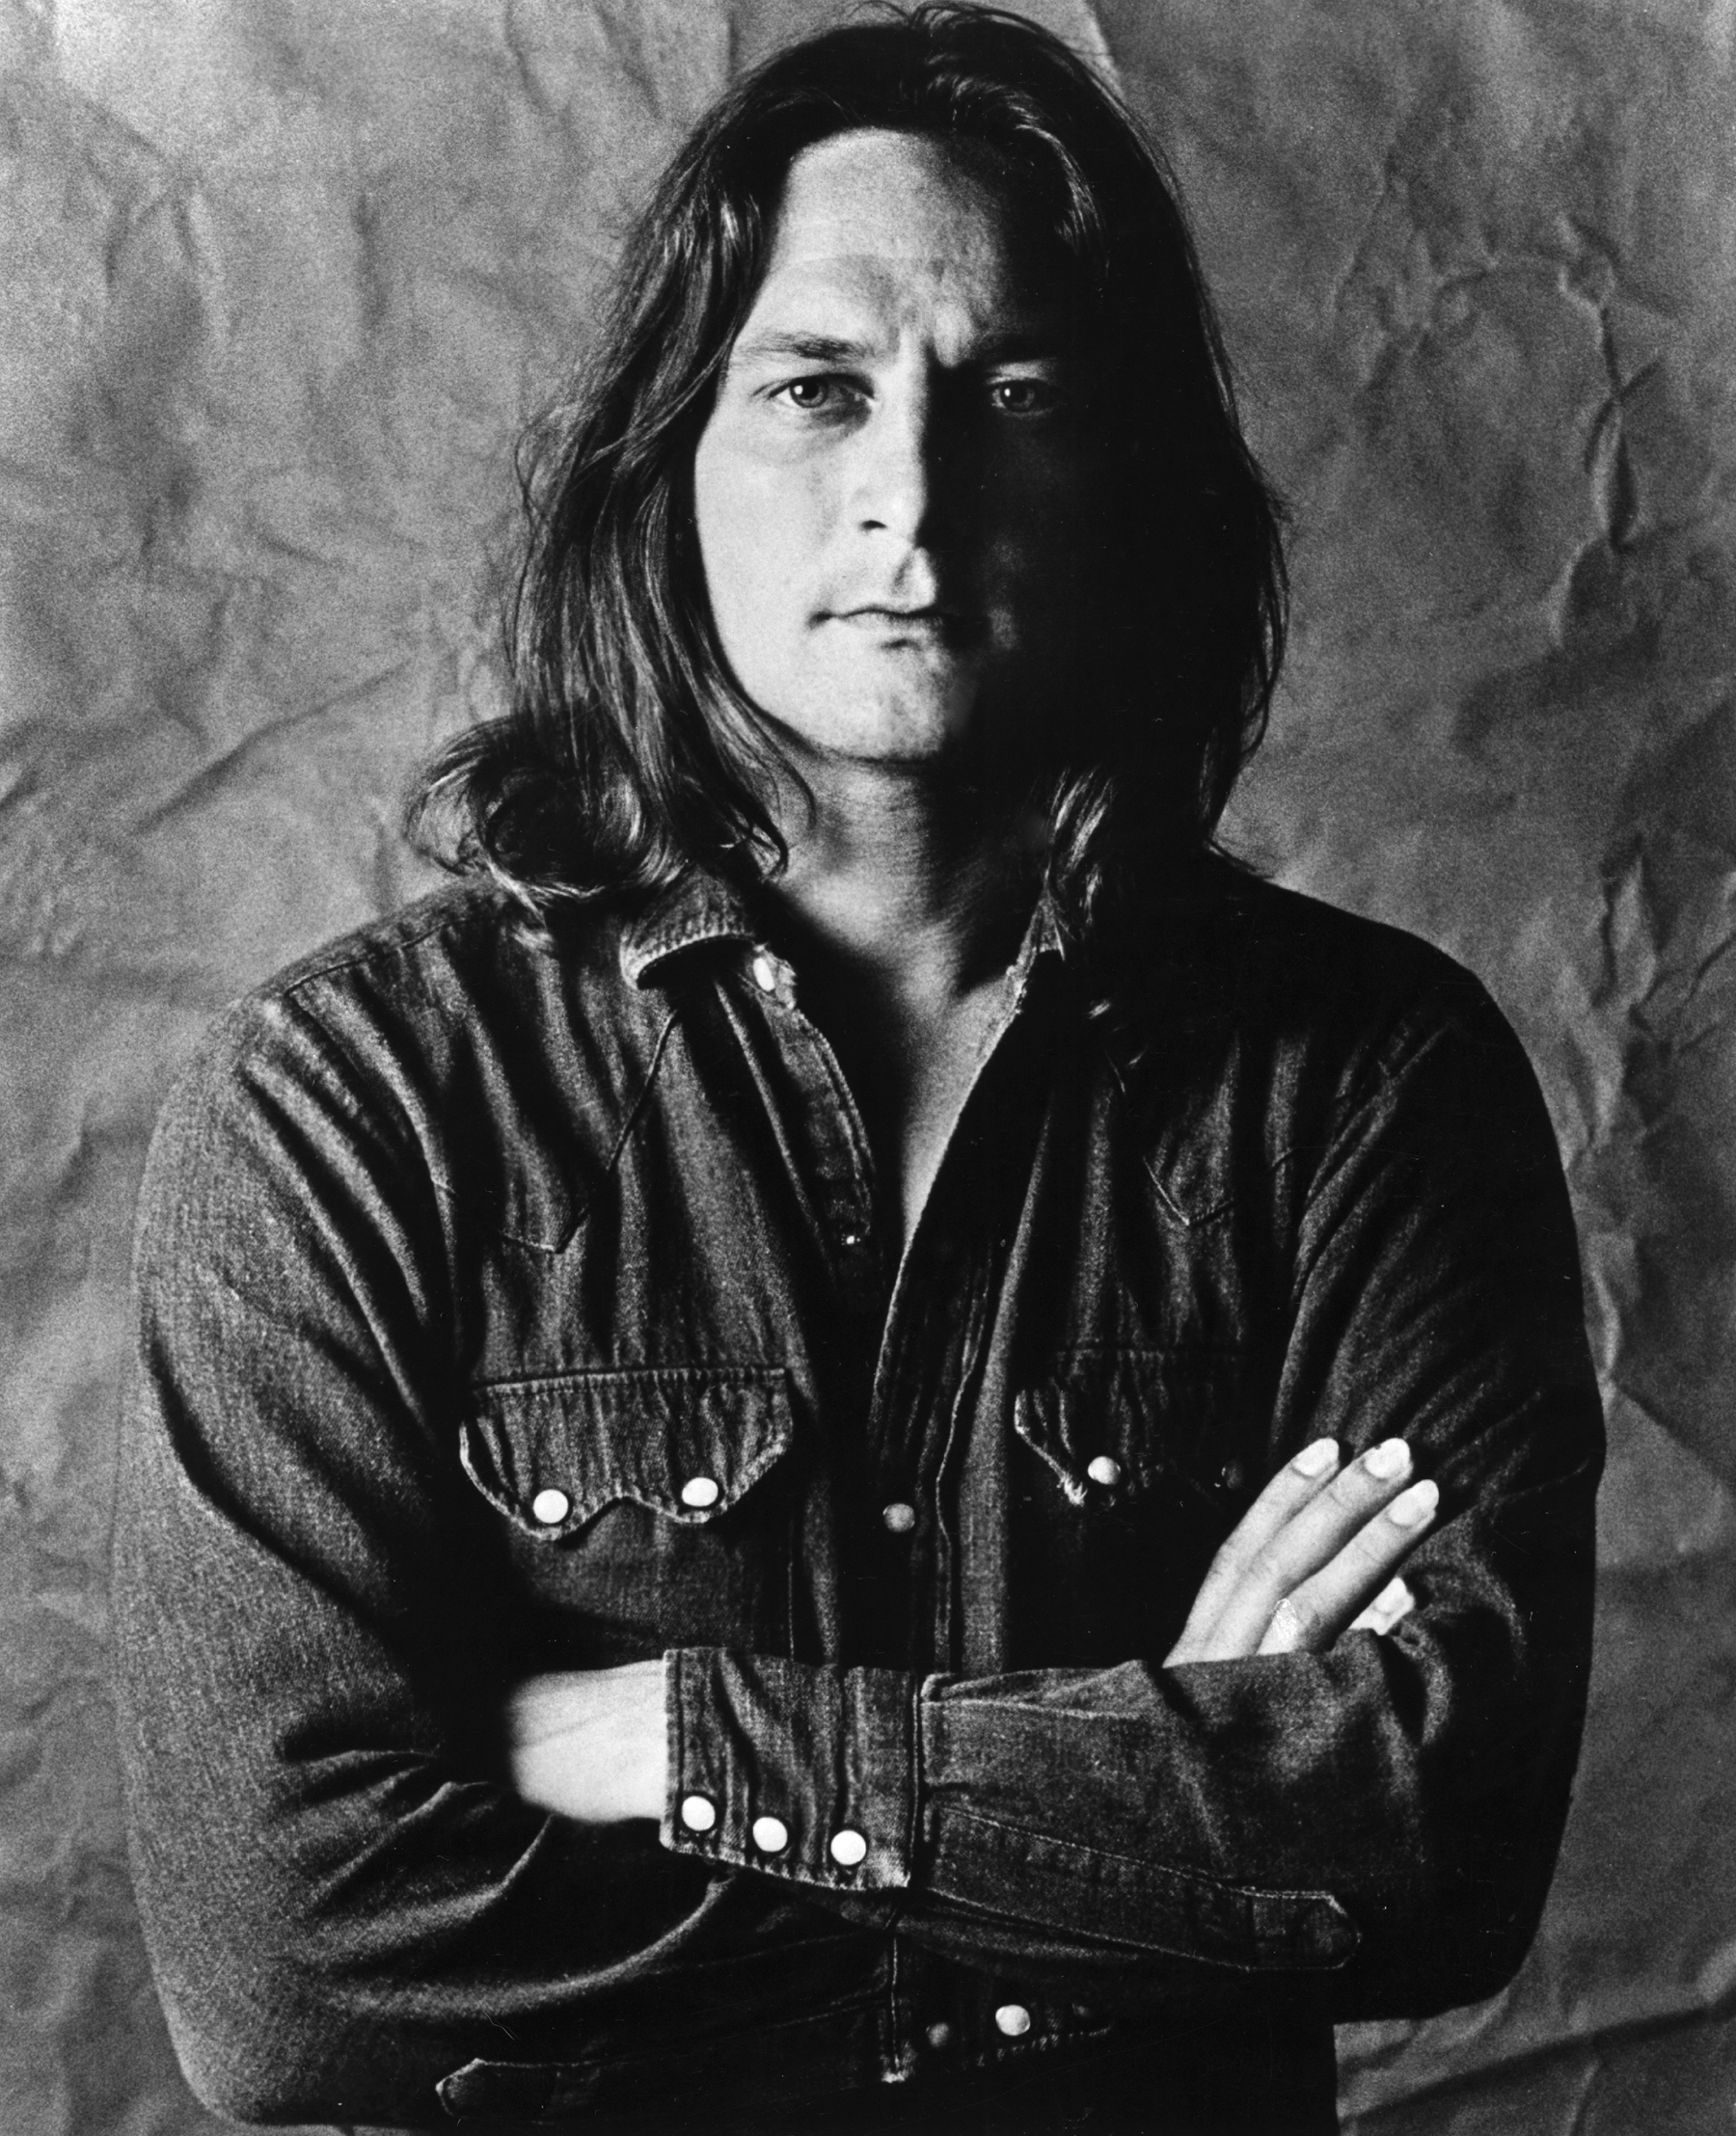 Gene Clark from The Byrds